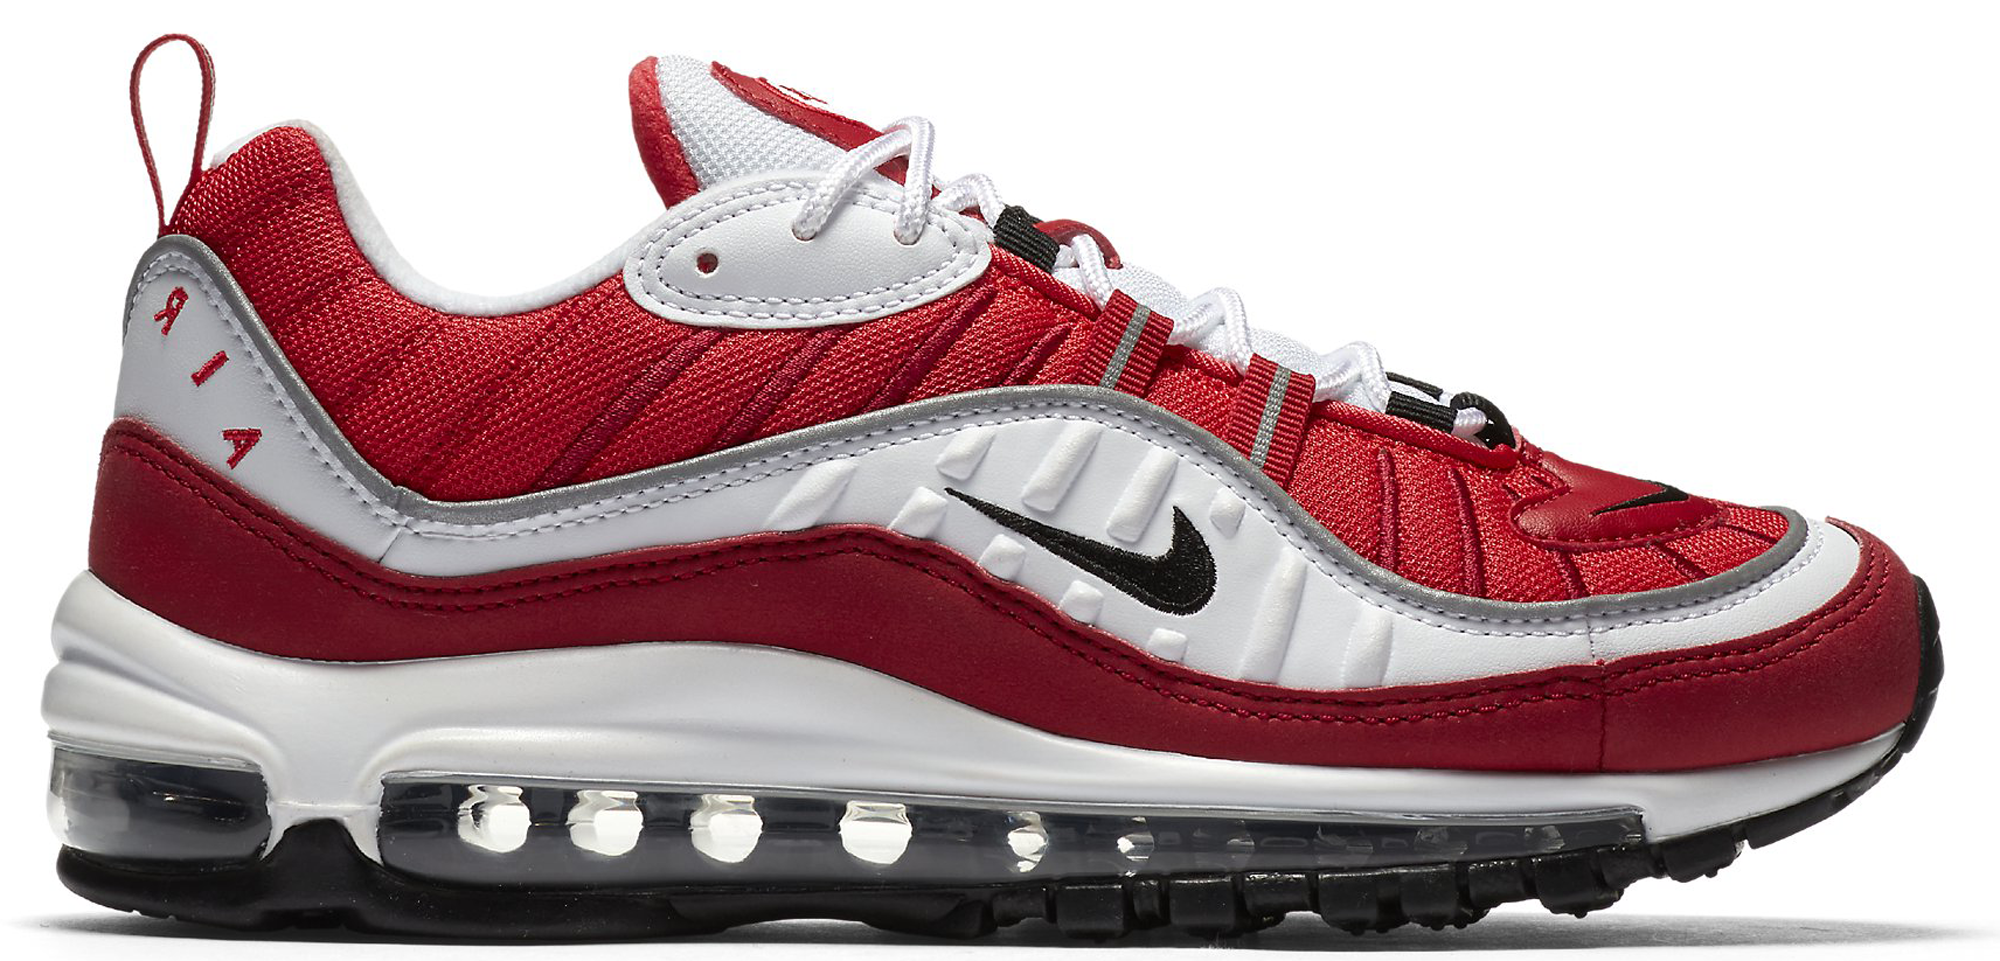 nike air max gym red 98